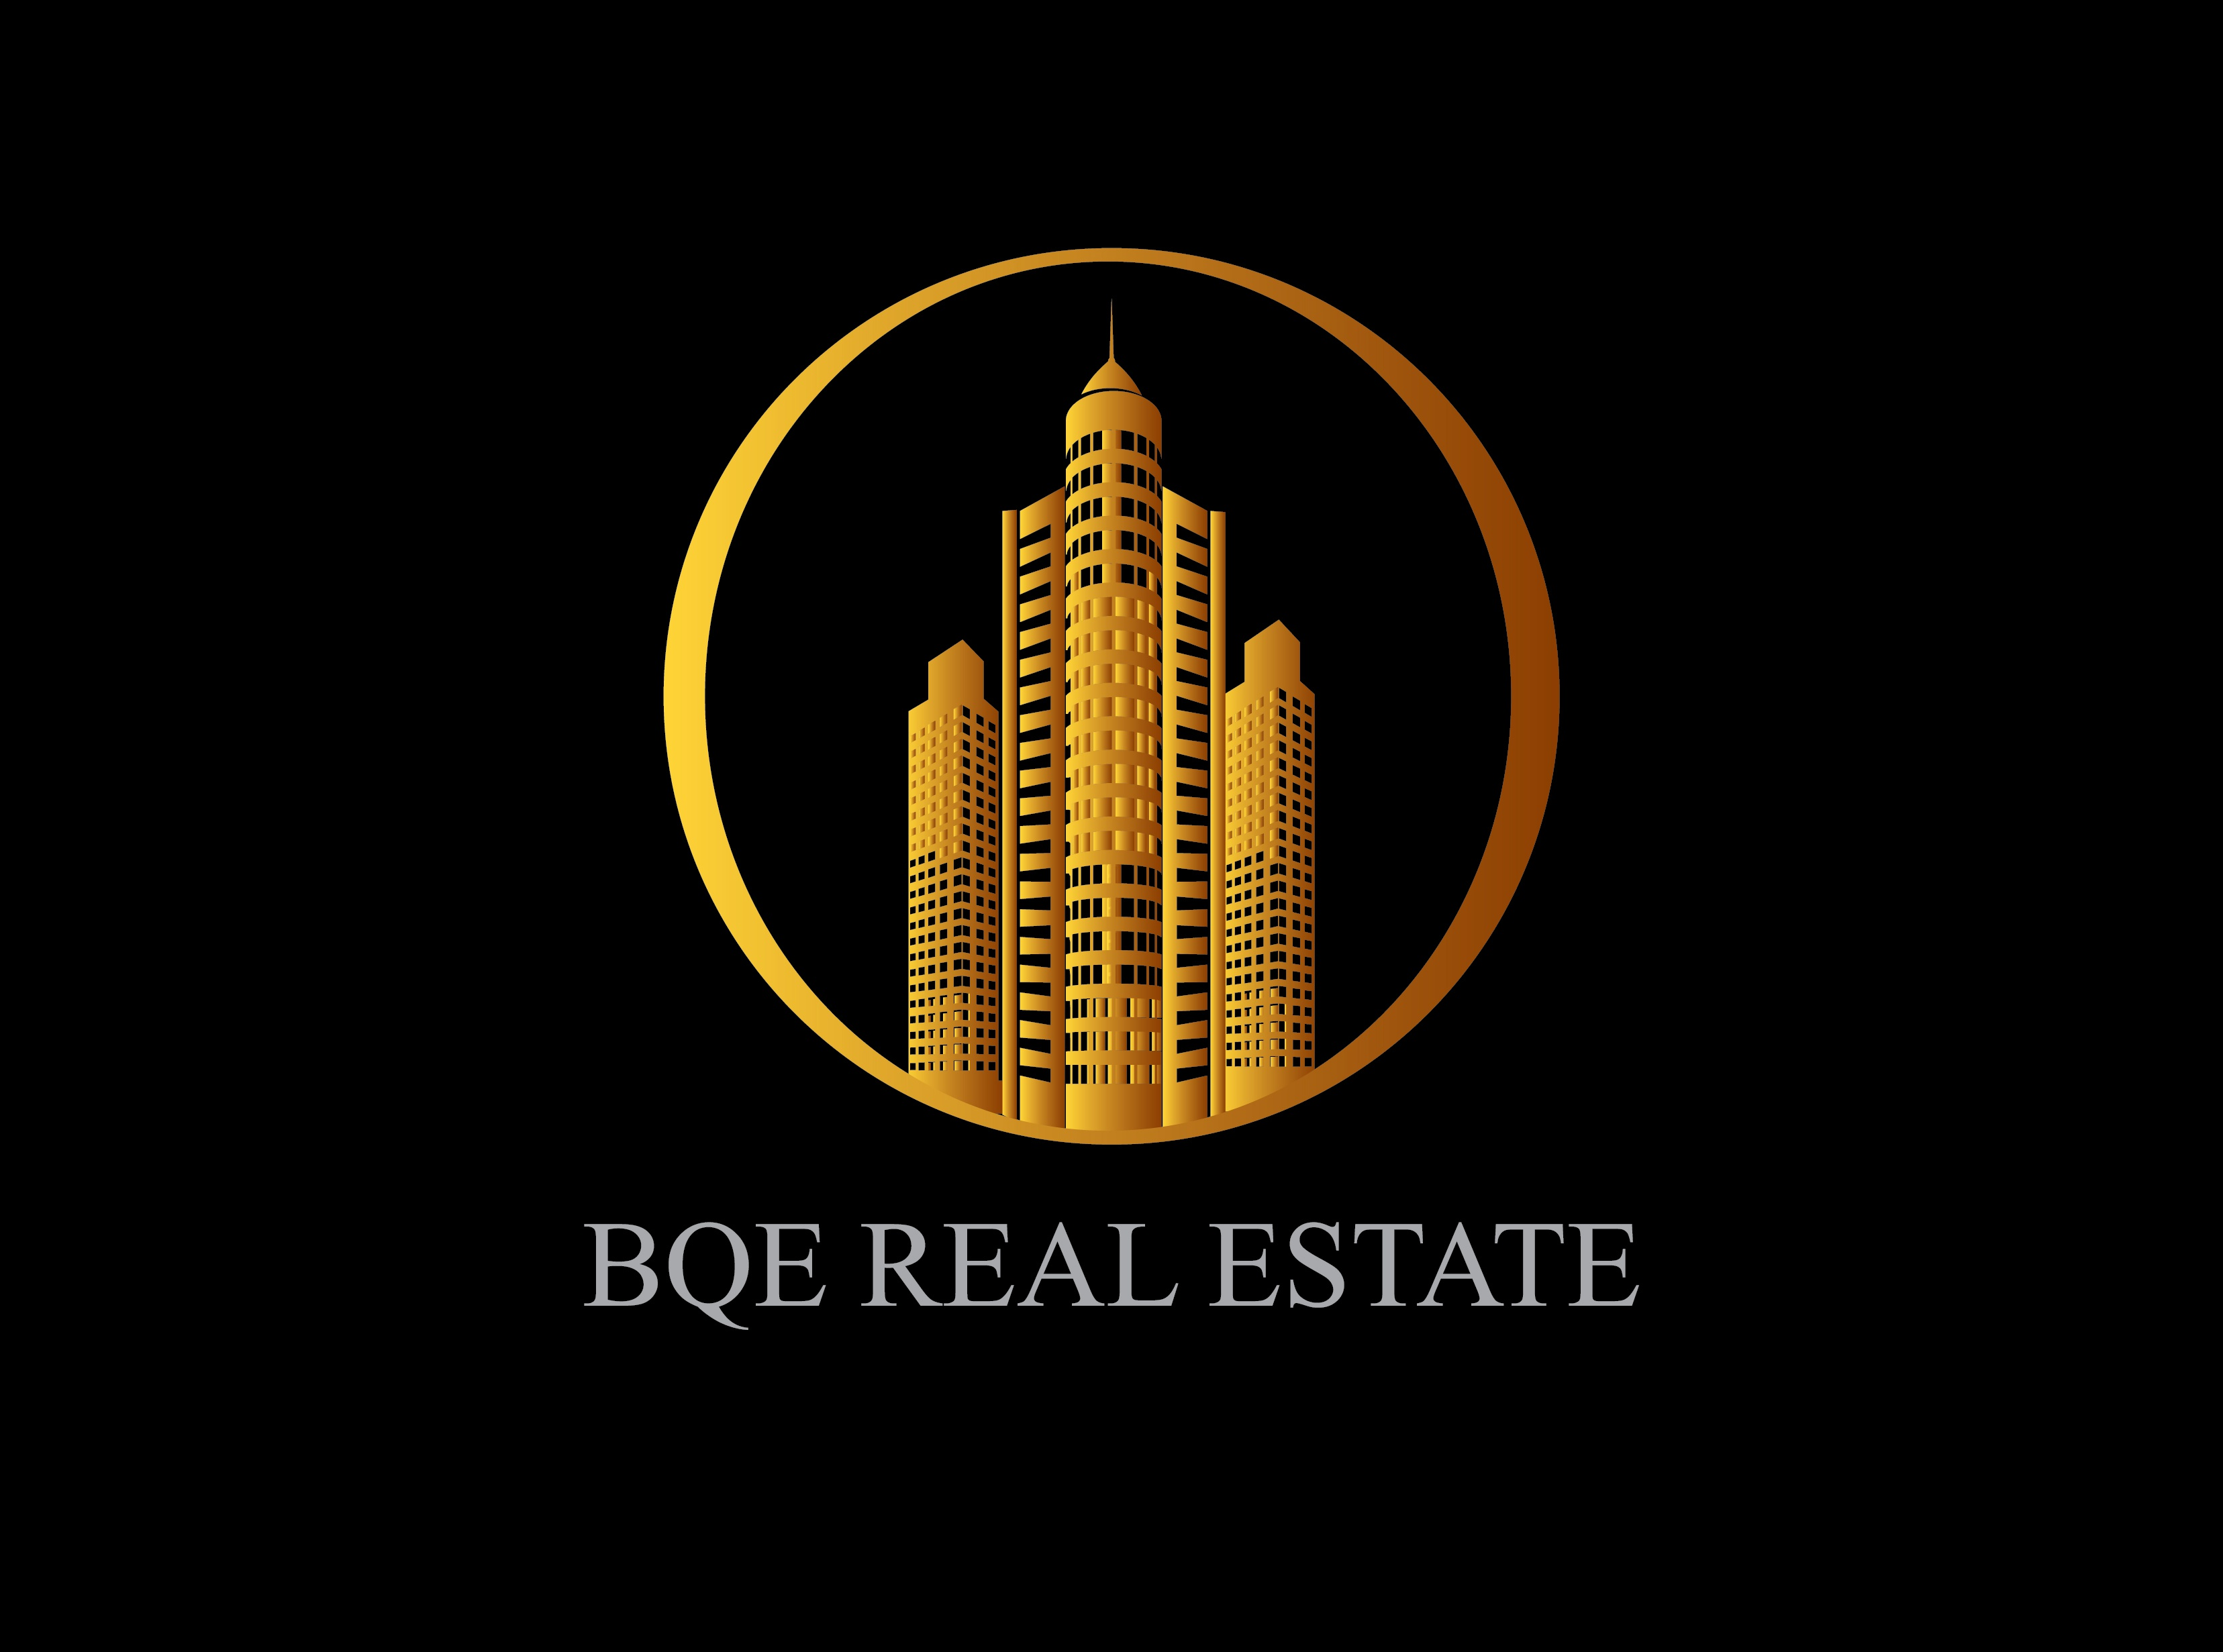 Best real estate logos